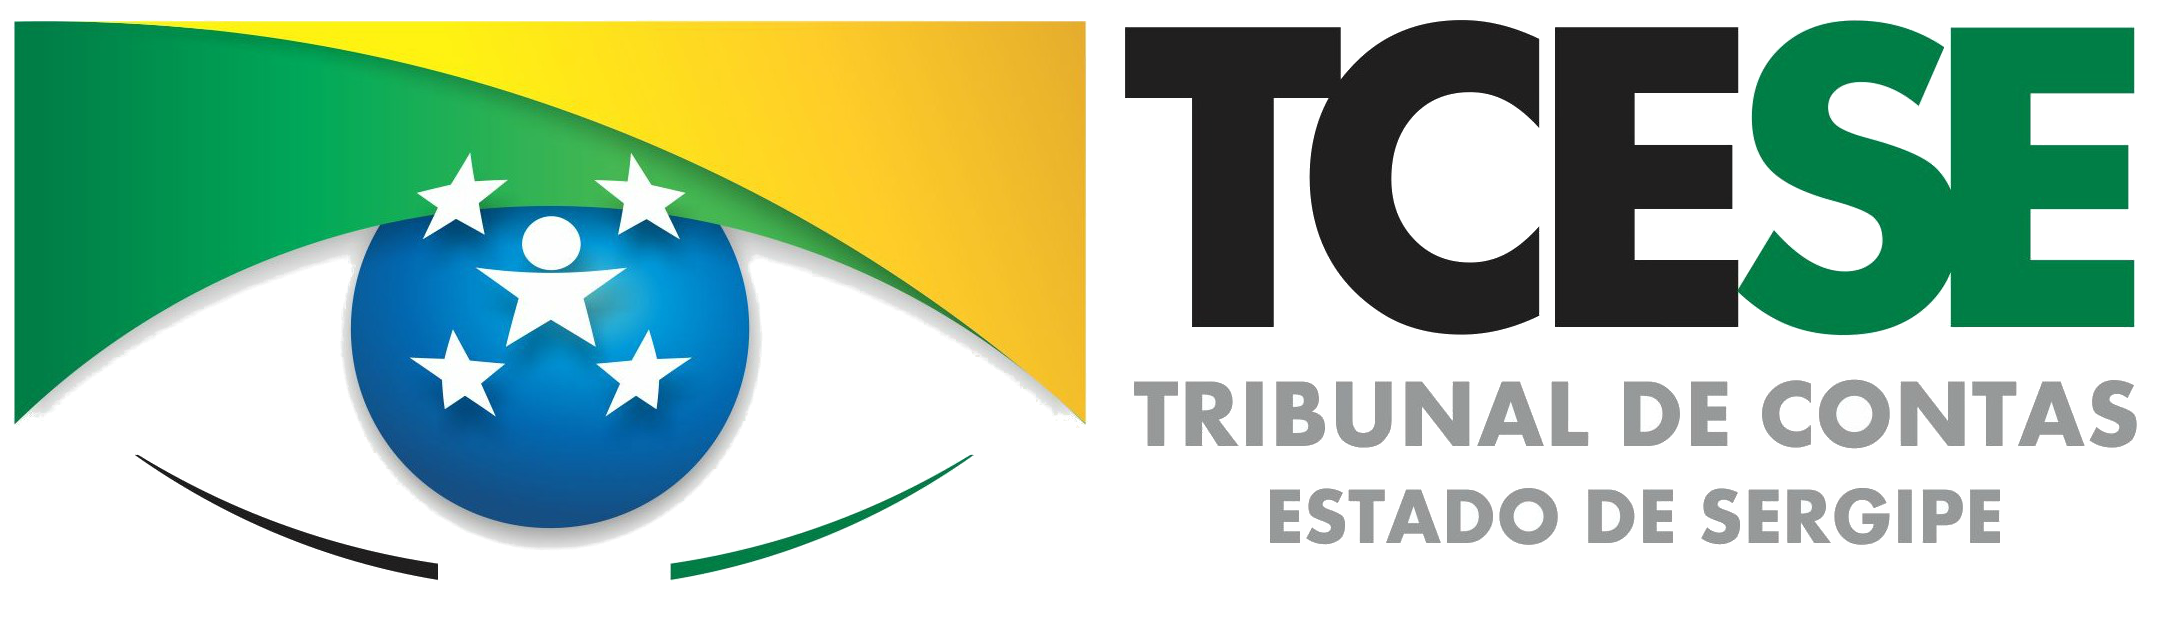 Logotipo TCESE